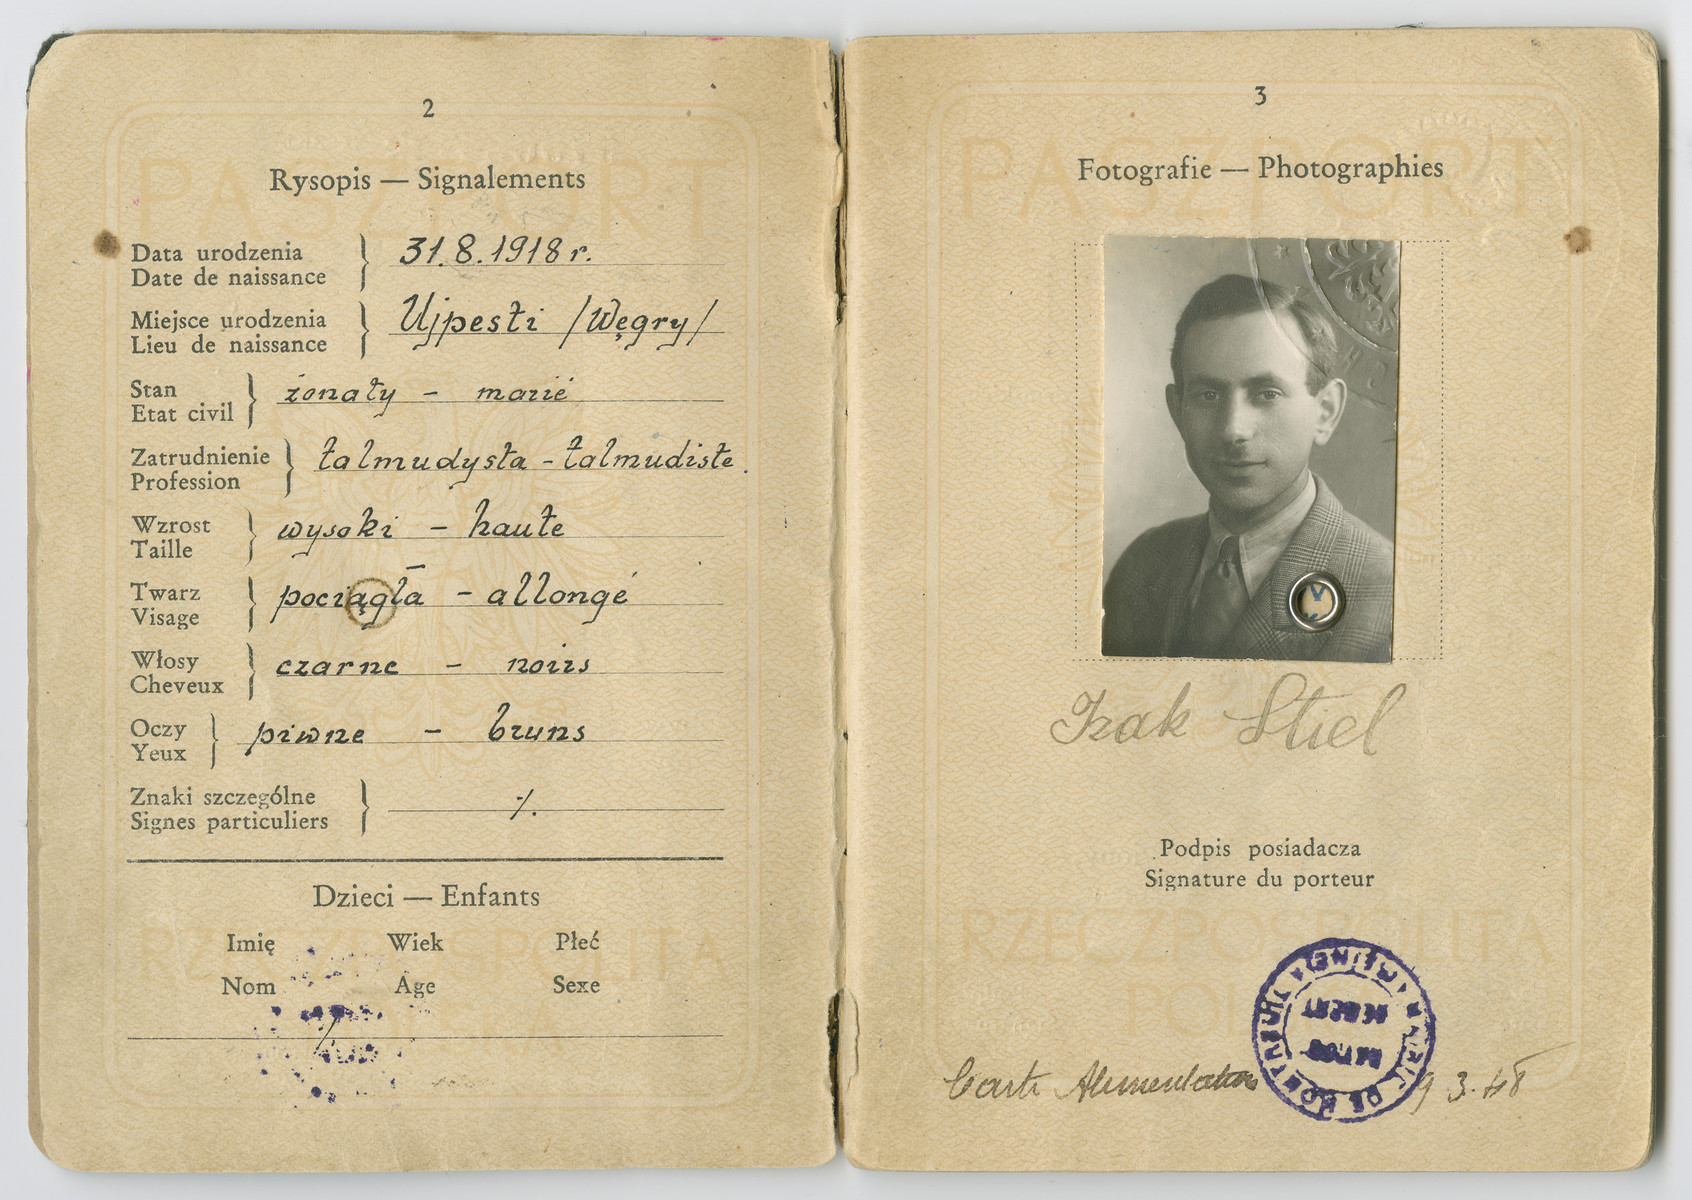 Polish passport of Izak Stiel listing his profession as a Talmudist.